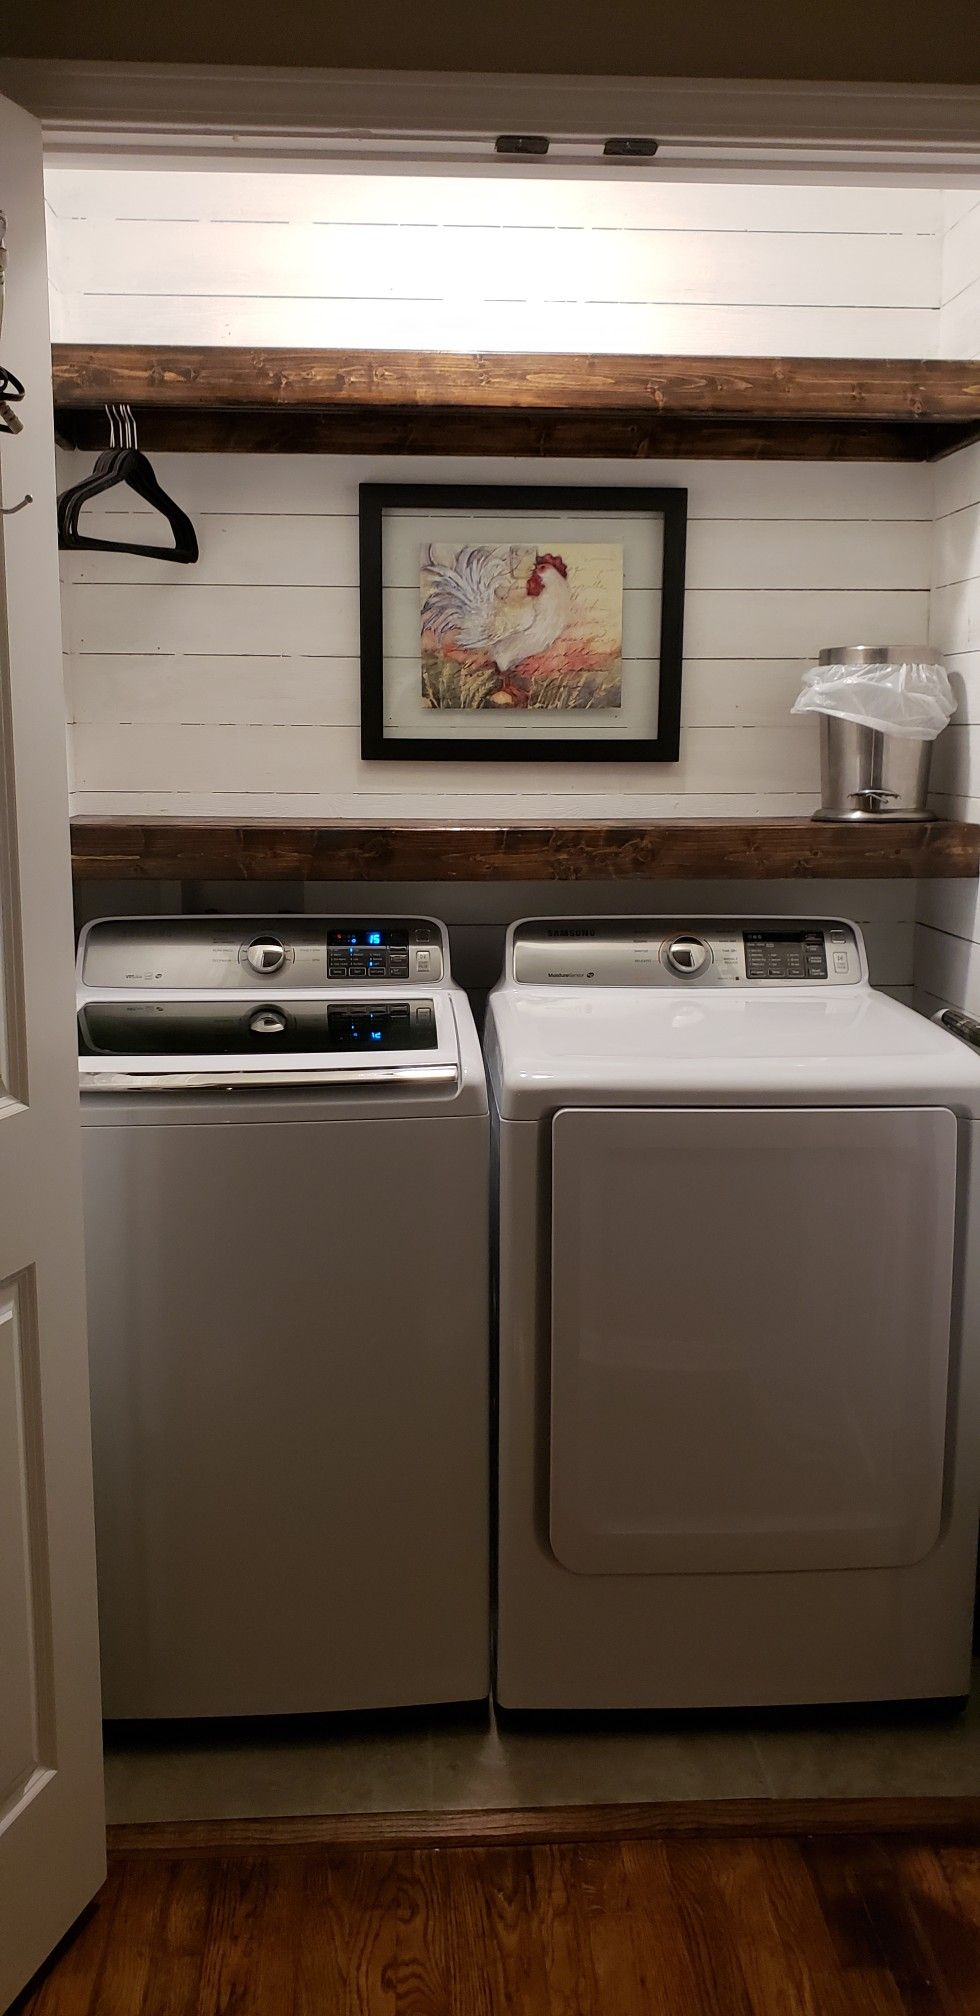 shiplap #handymanhusband #laundryroomremodel  Small room design